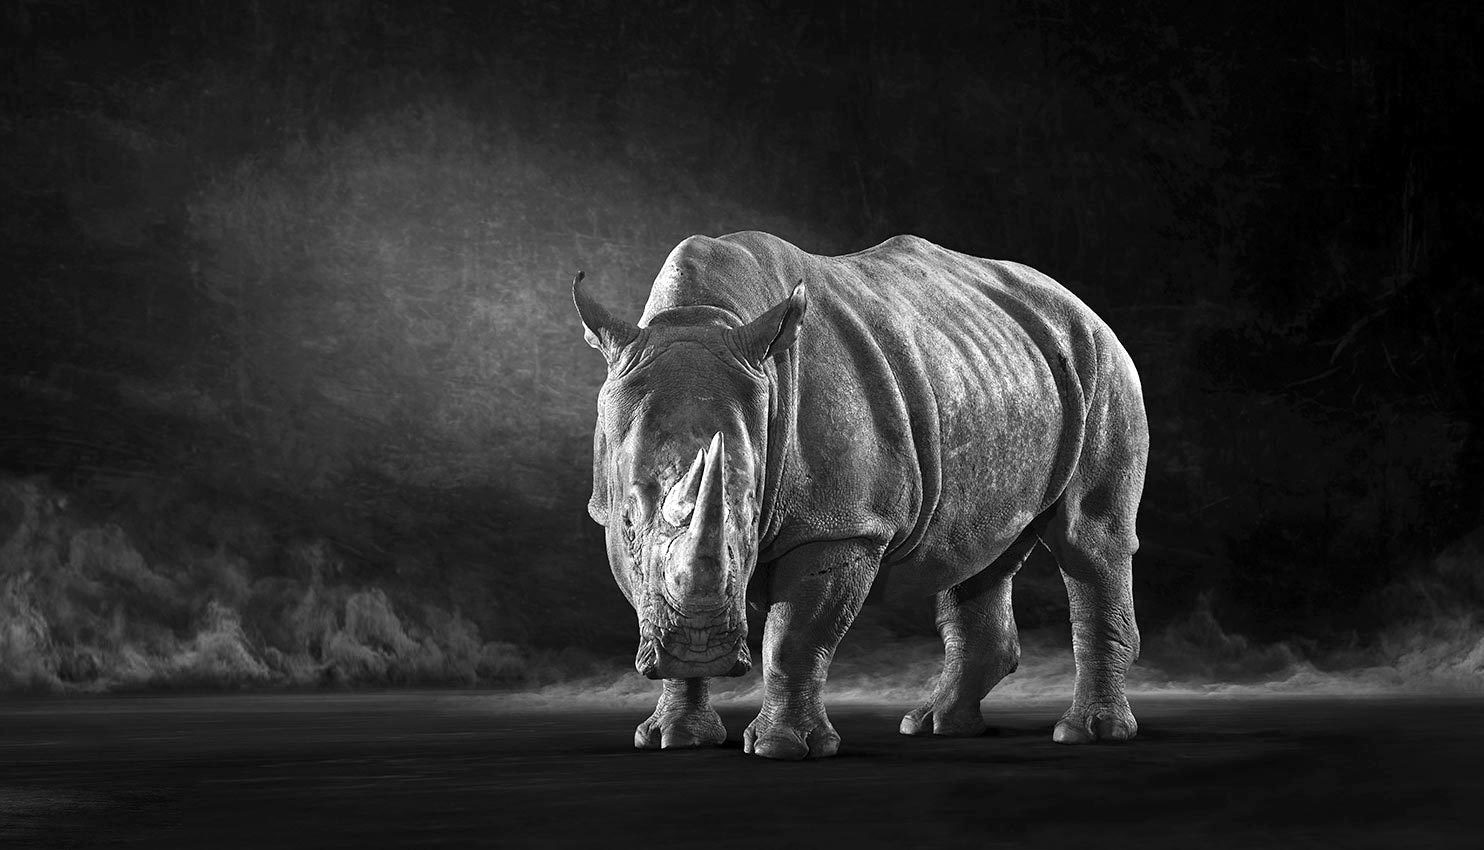 The White Rhino - The Endangered Series